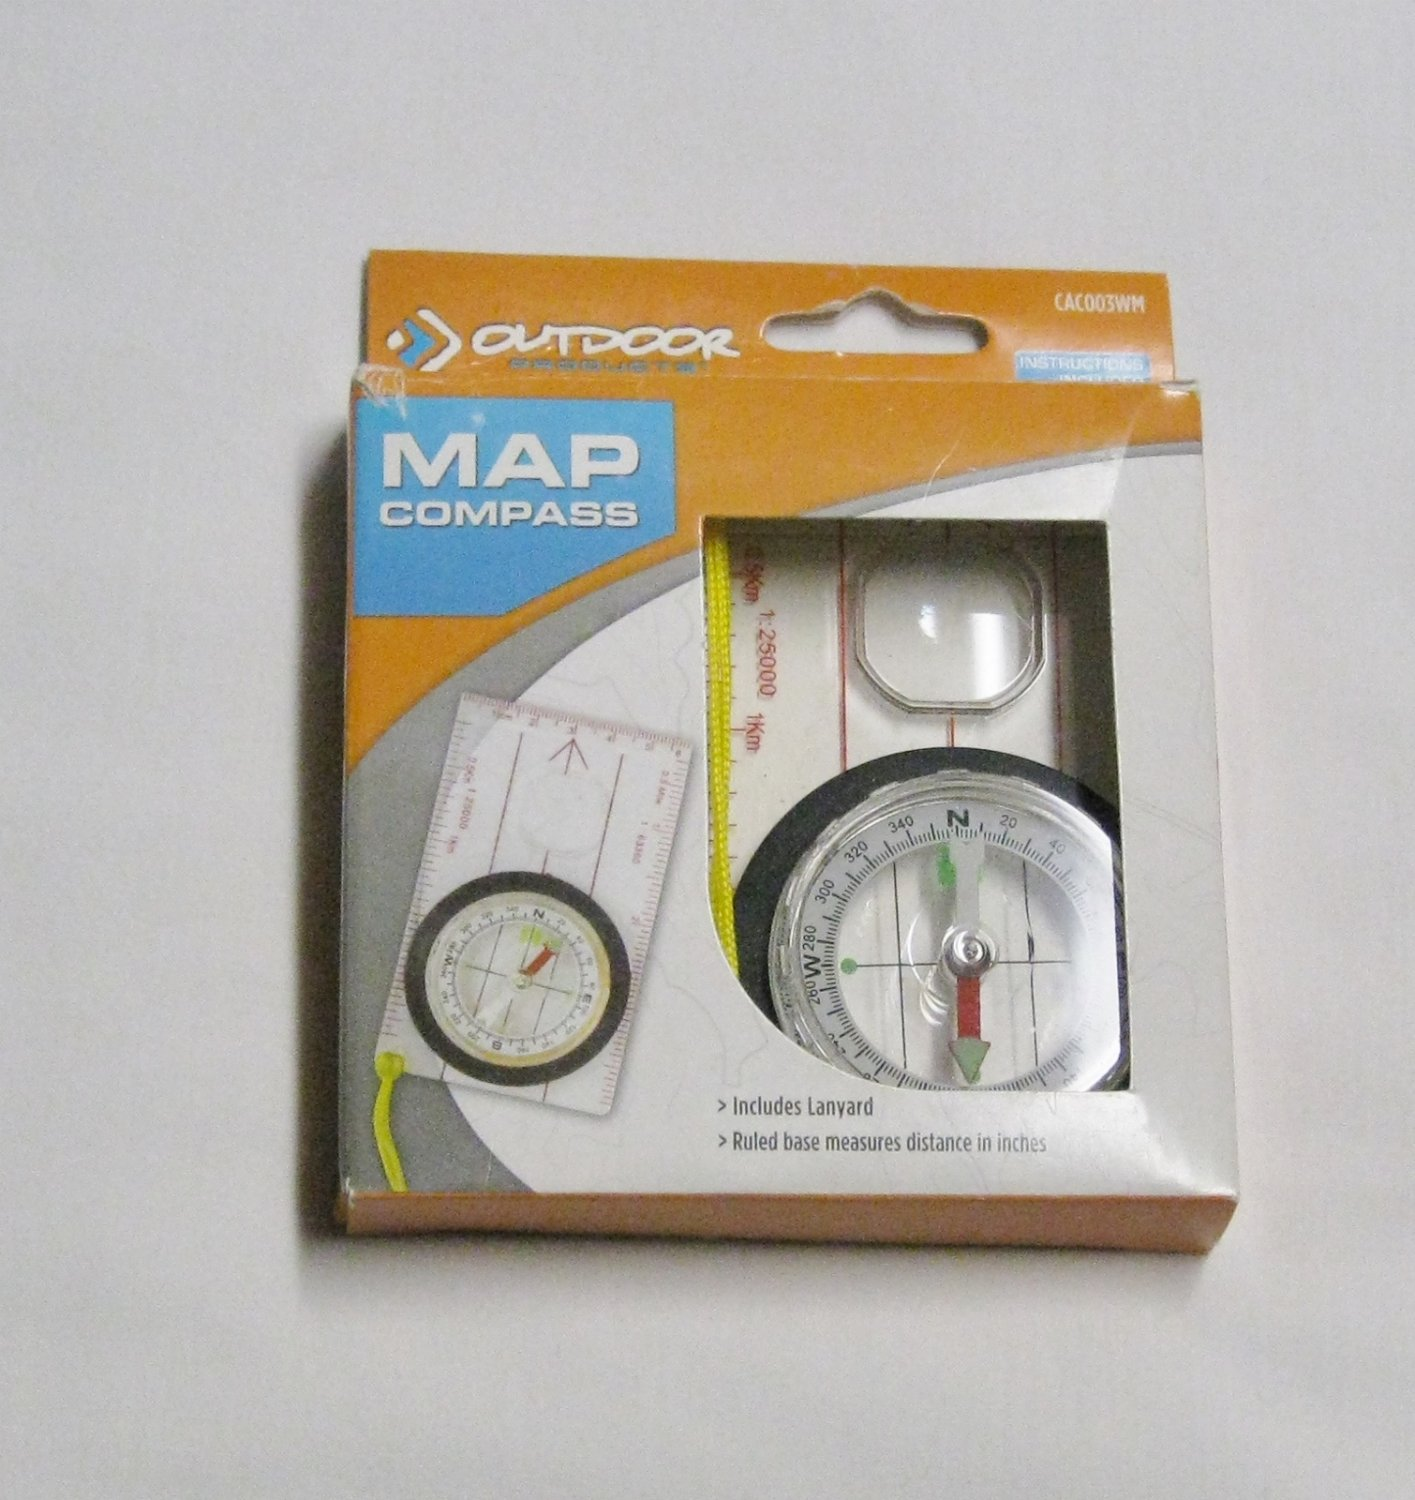 NIP Map Compass with Lanyard by Outdoor Products